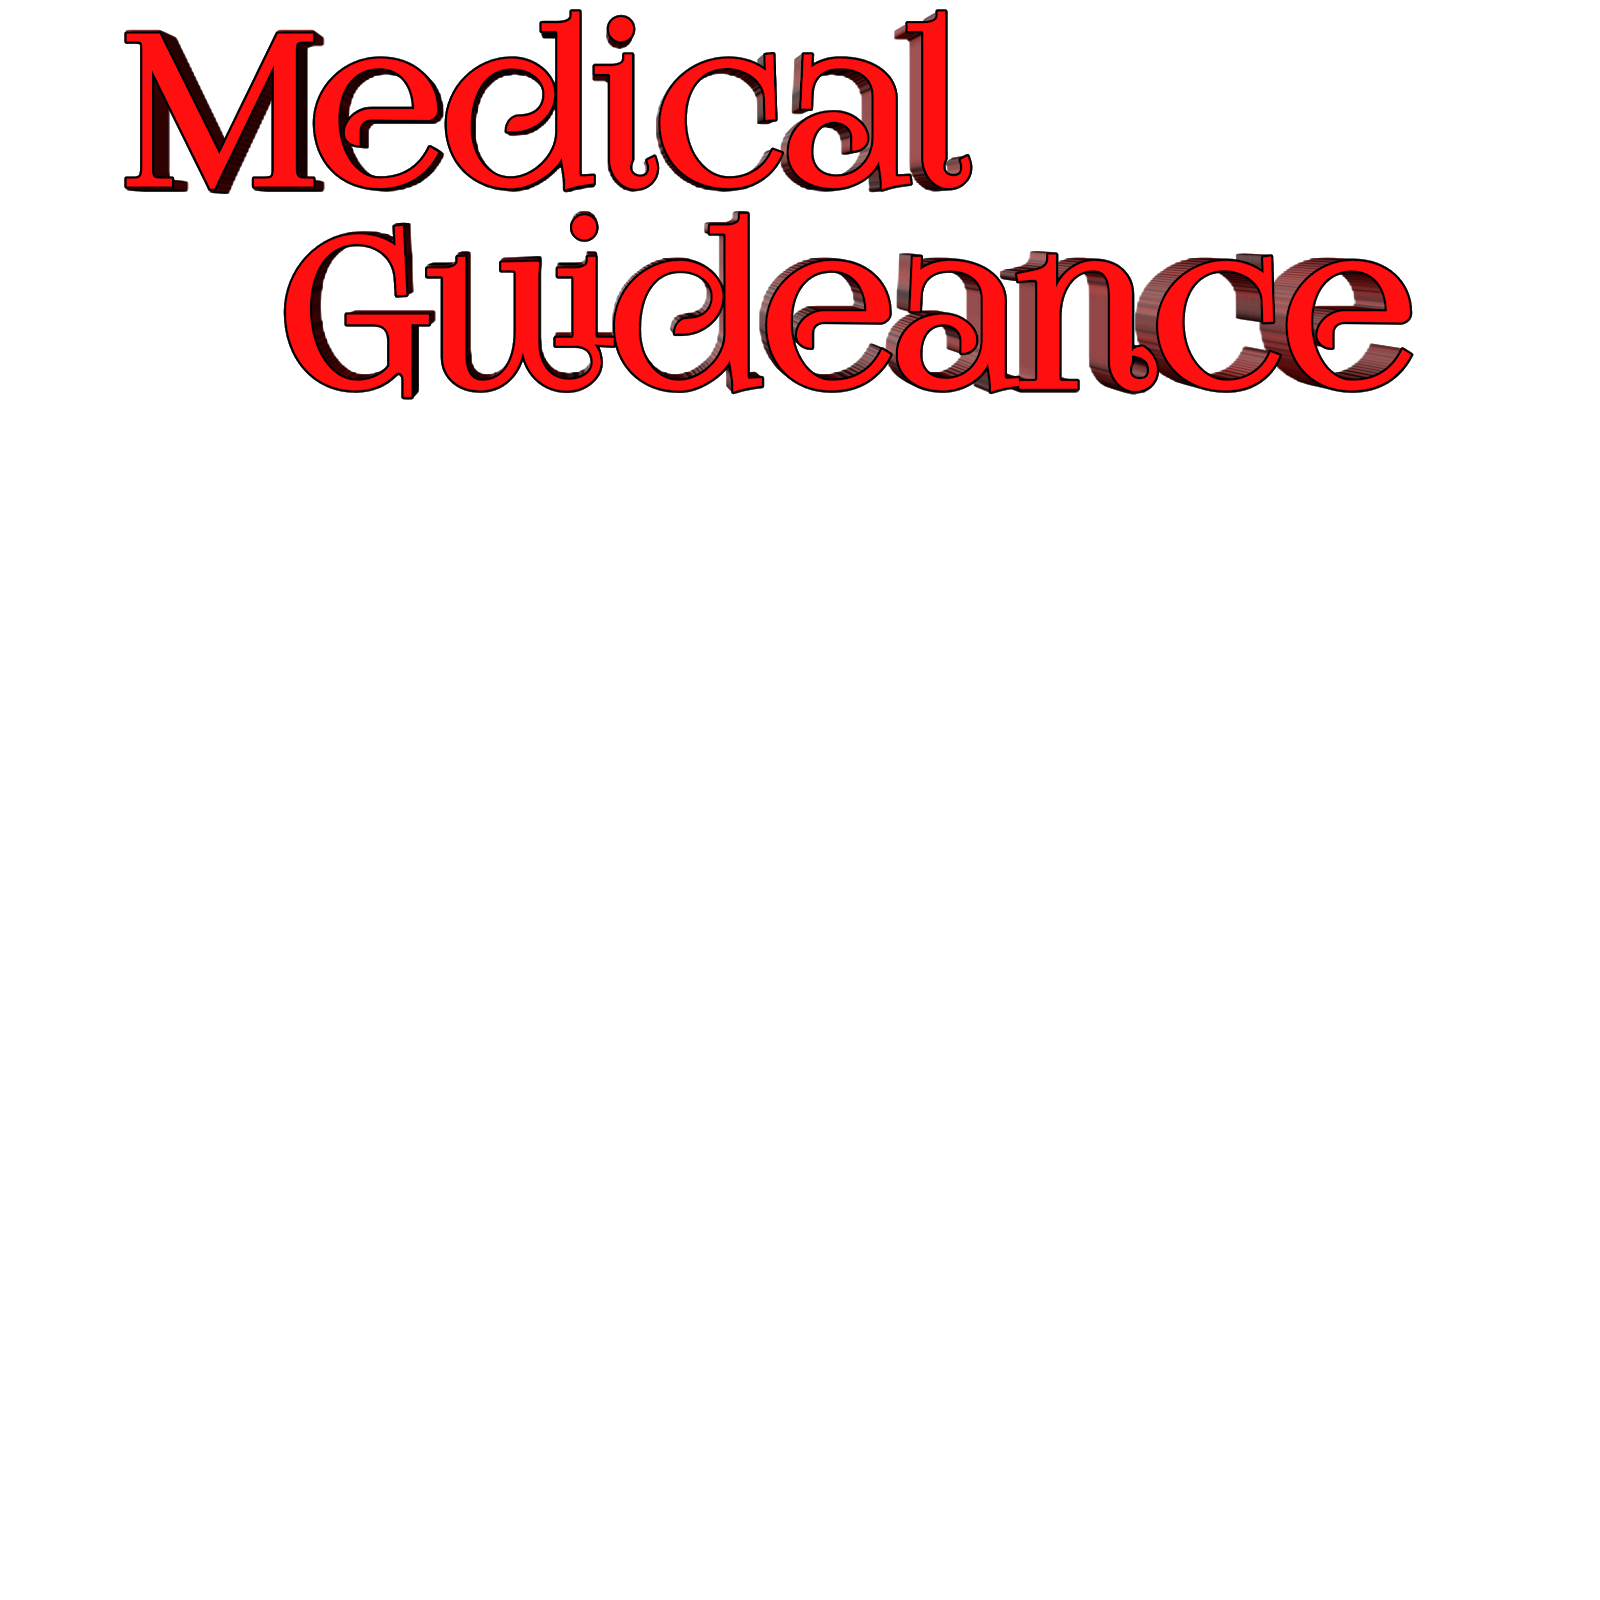 Medical Guideance